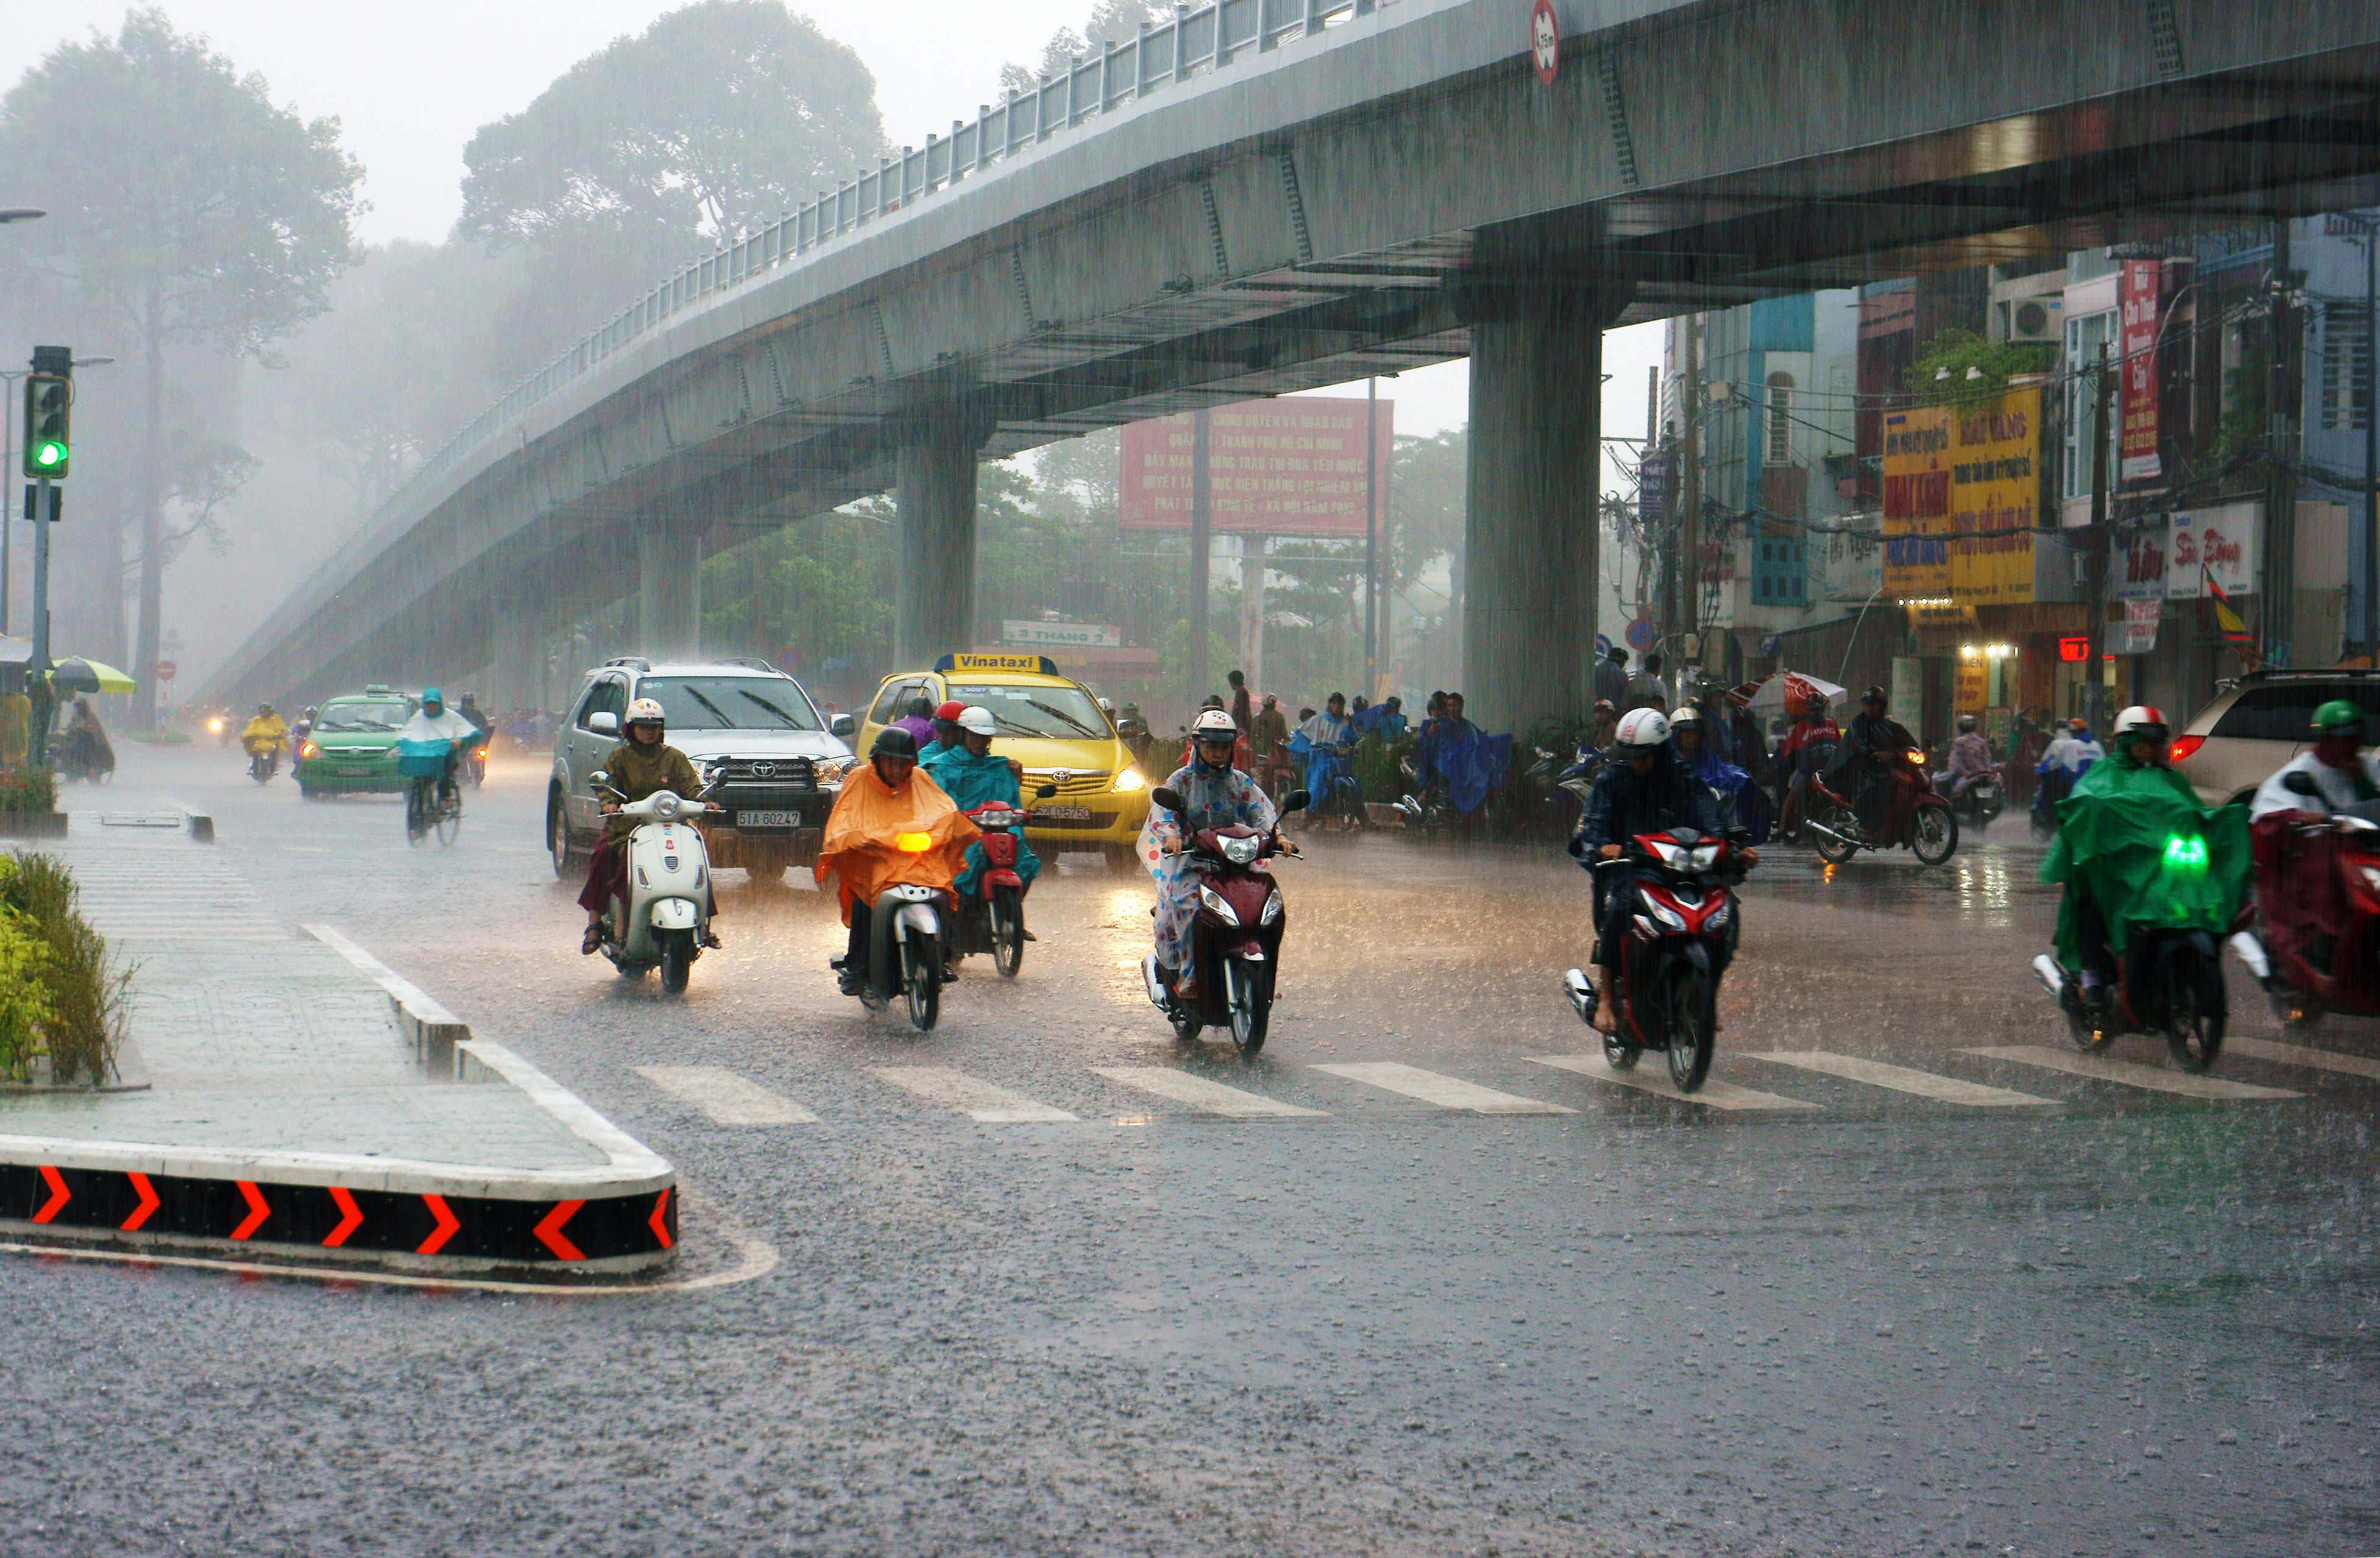 Vietnams' road with drivers in rain